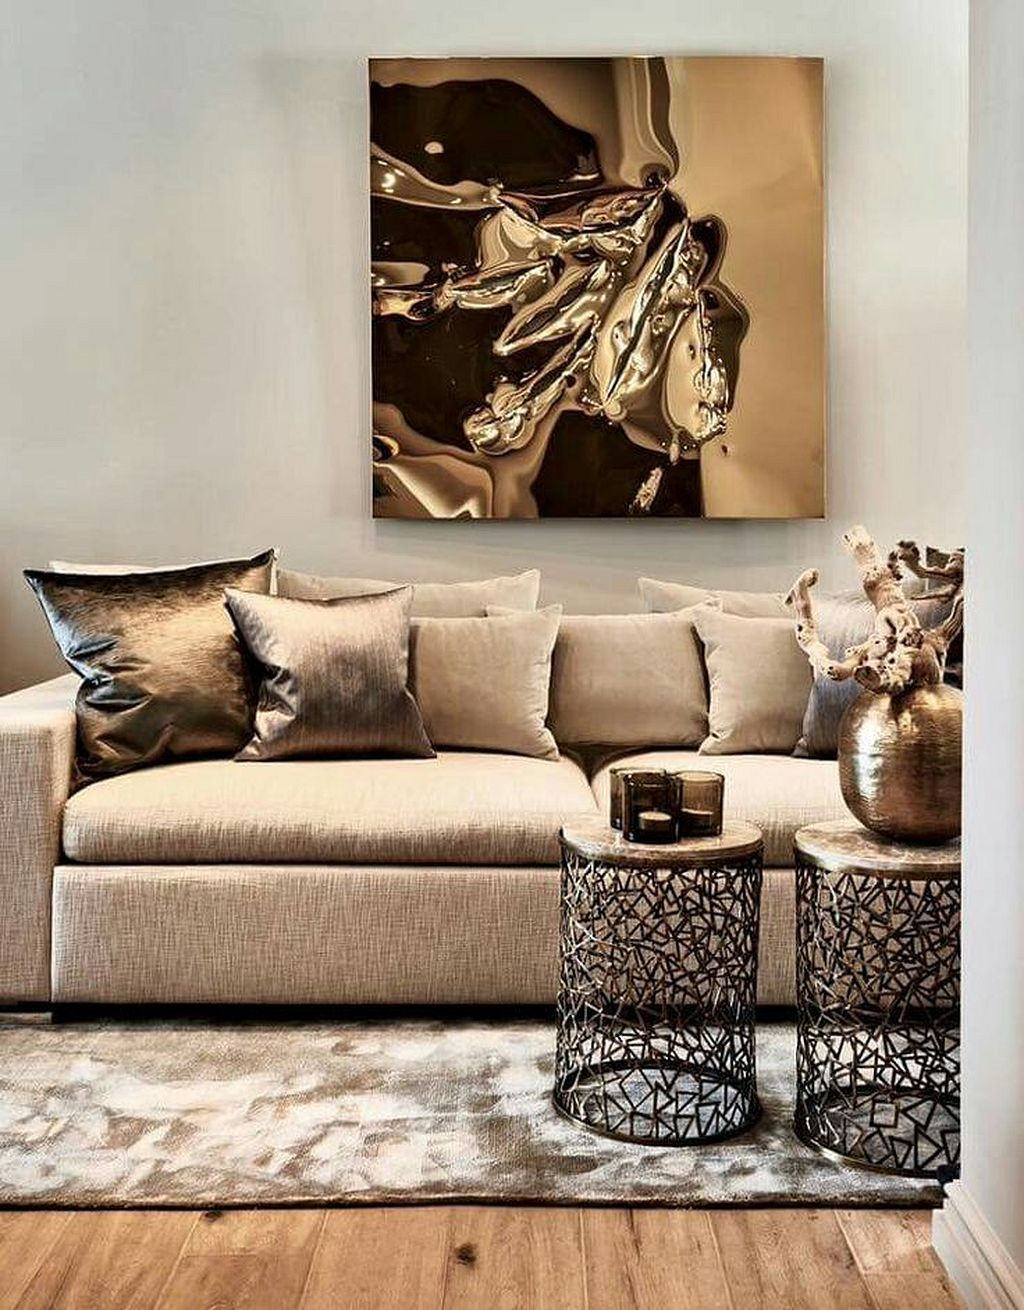 Stunning 30 What A Love Beige Color For Your Living Room Ideas Https Kidmagz Com 30 Beige Sofa Living Room Bronze Living Room Contemporary Decor Living Room Bronze living room decor